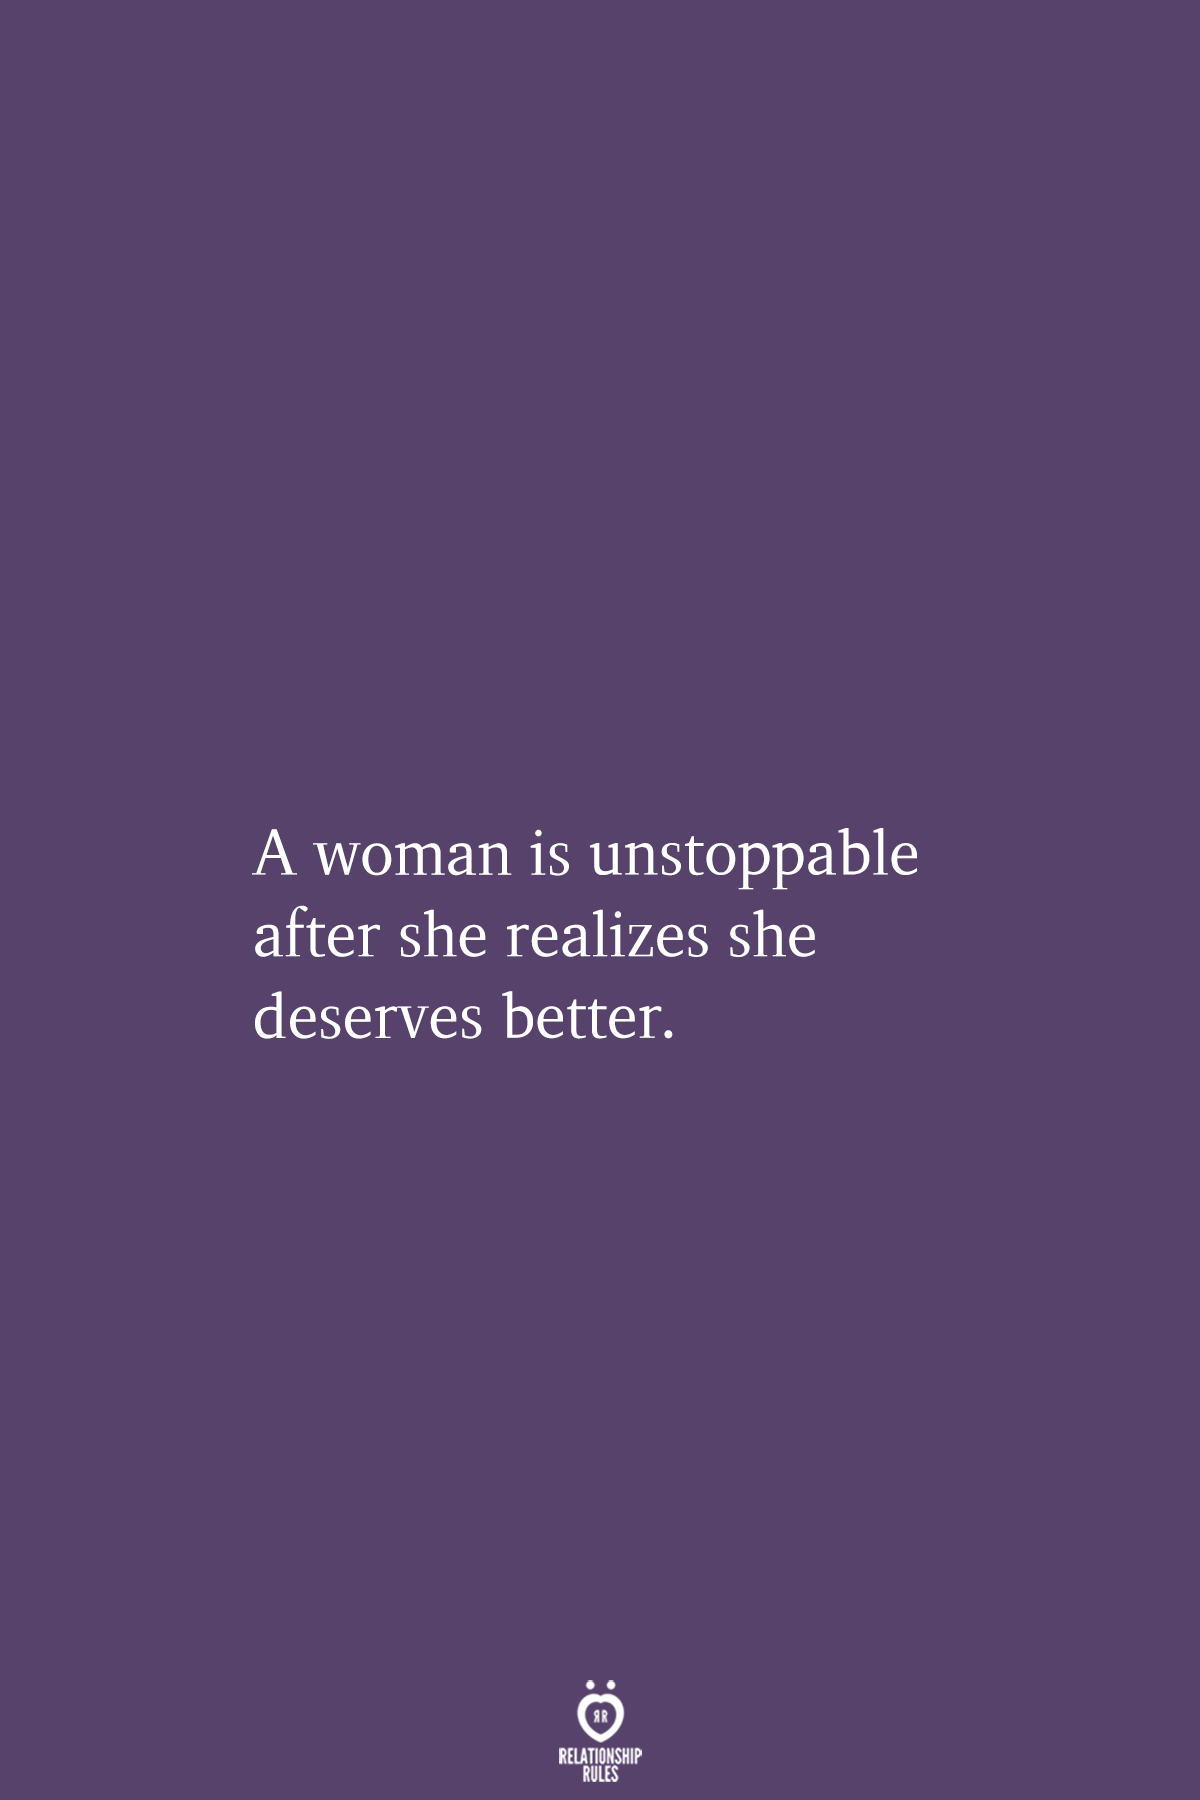 https://www.relrules.com/a-woman-is-unstoppable-after-she-realizes-she-deserves-better-2/